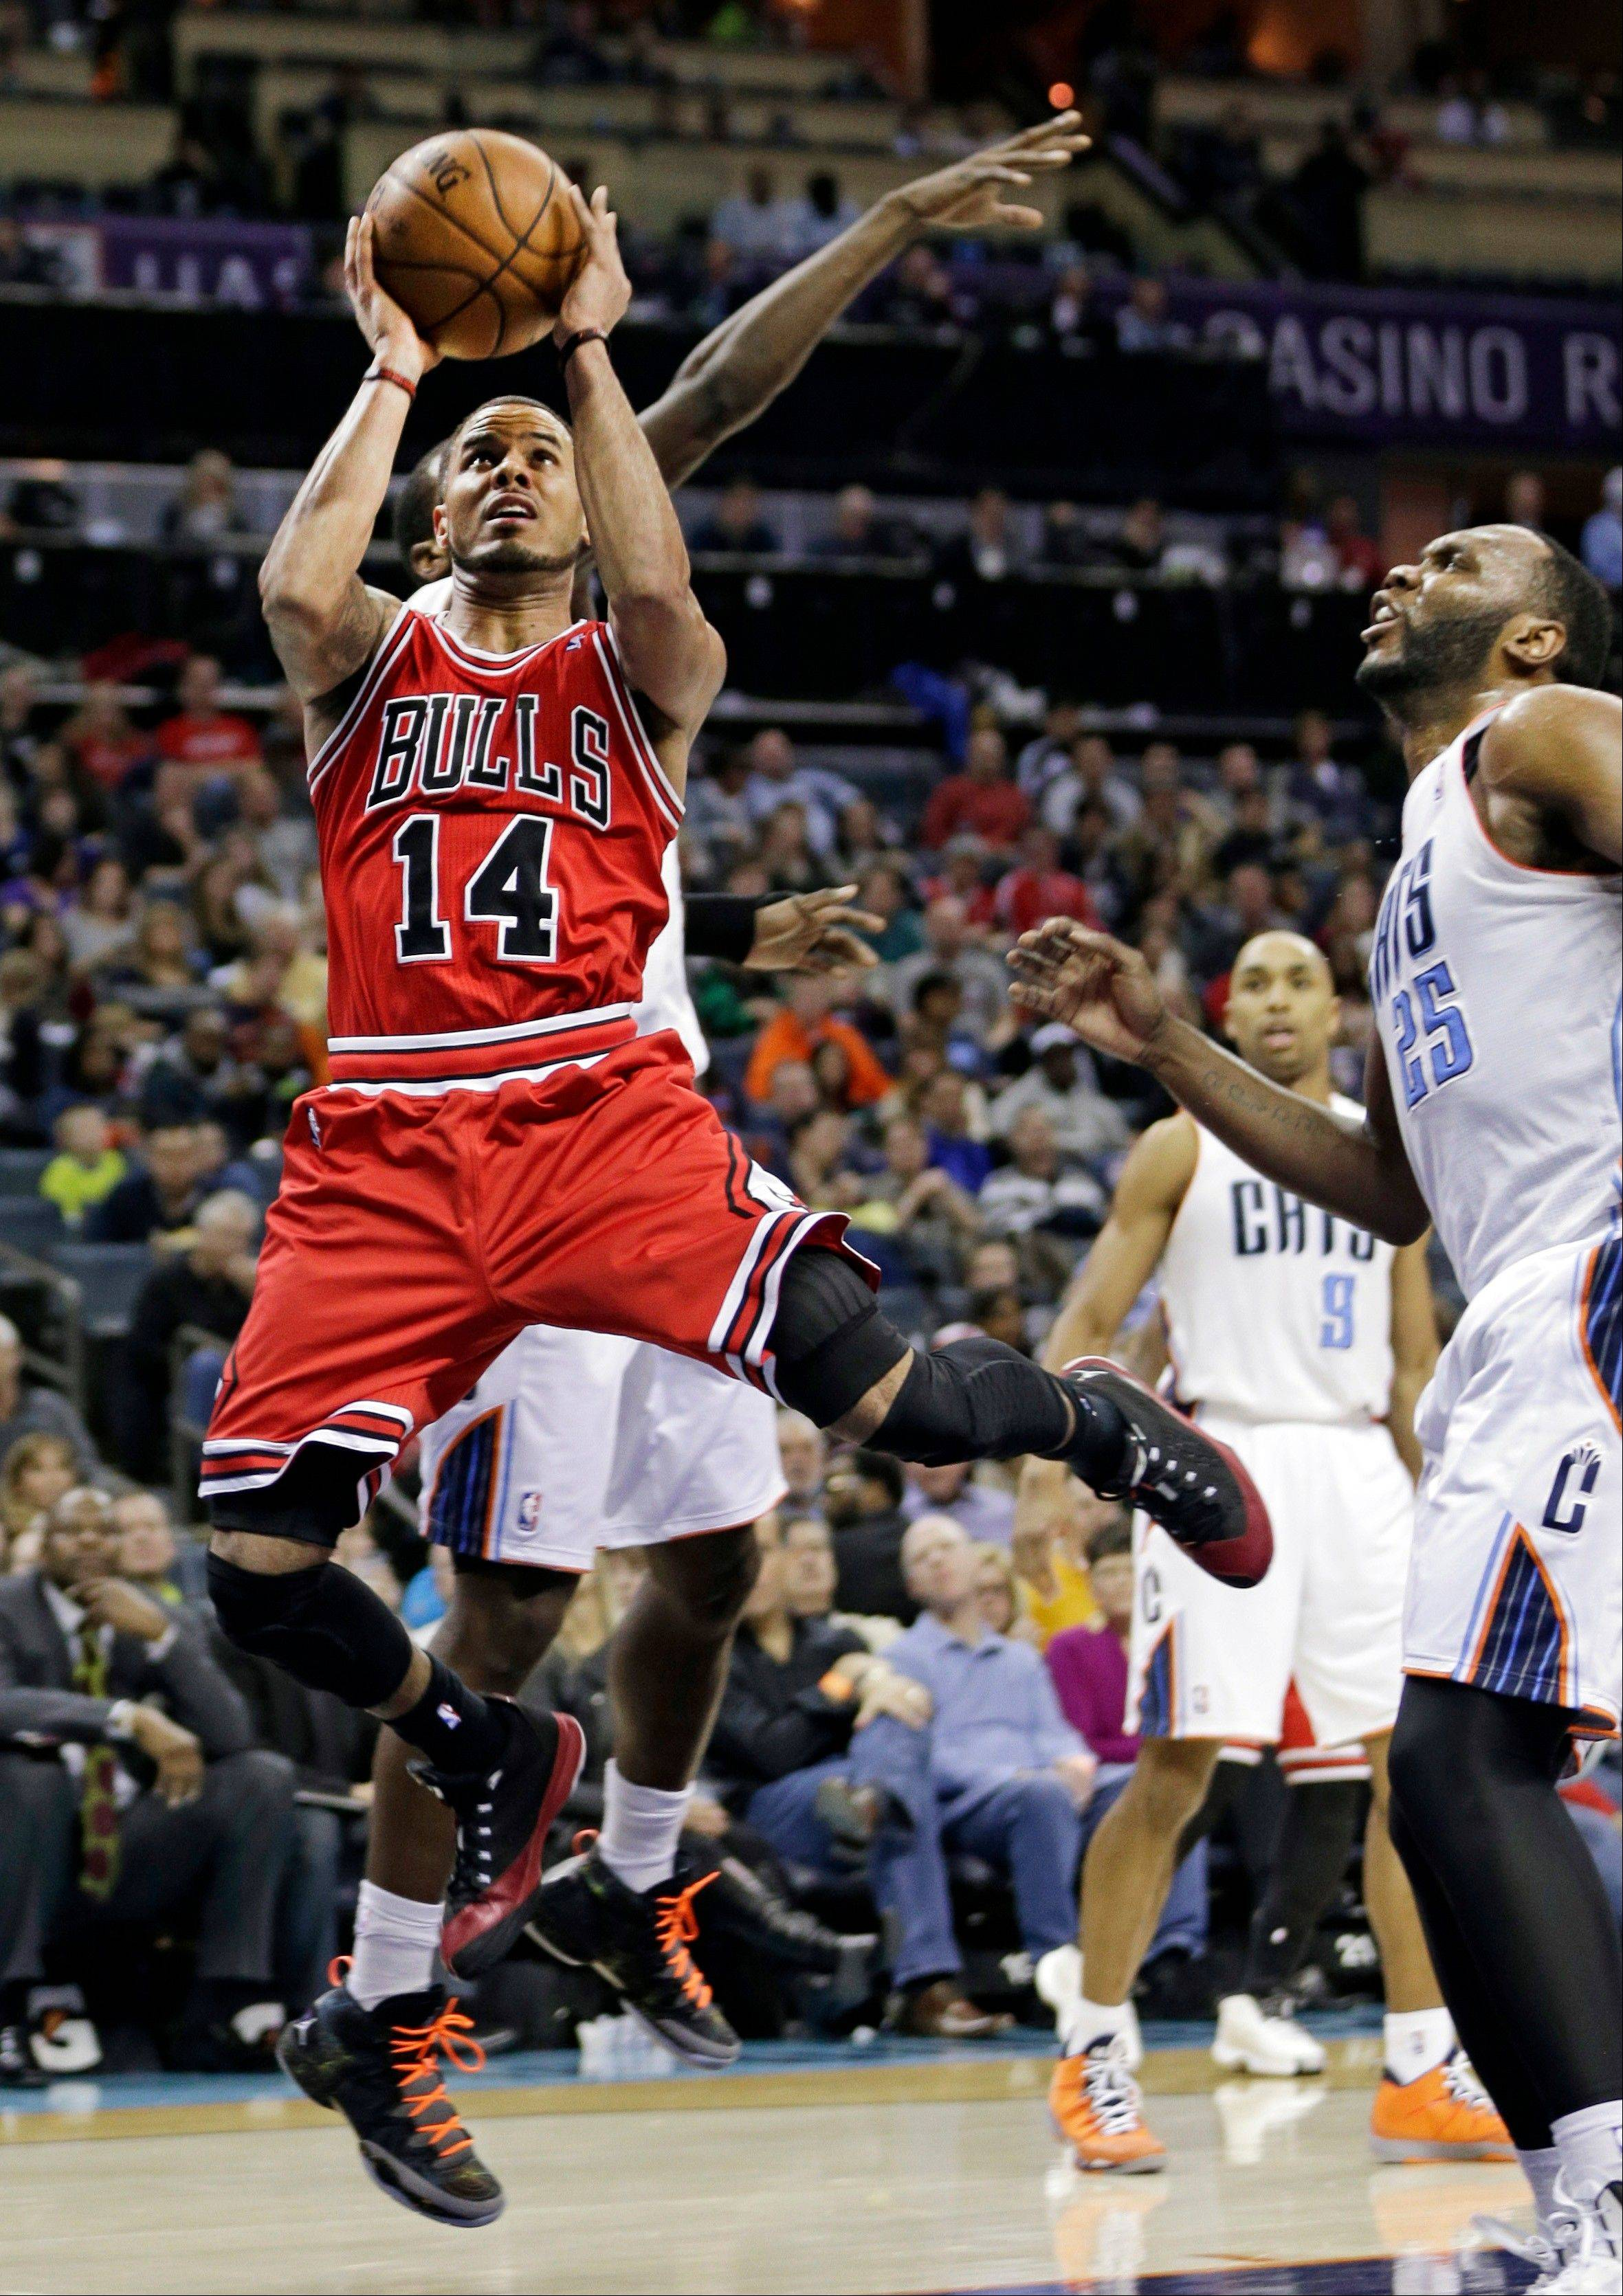 Bulls guard D.J. Augustin drives past the Bobcats� Al Jefferson during the second half Saturday night. Augustin finished with 28 points.